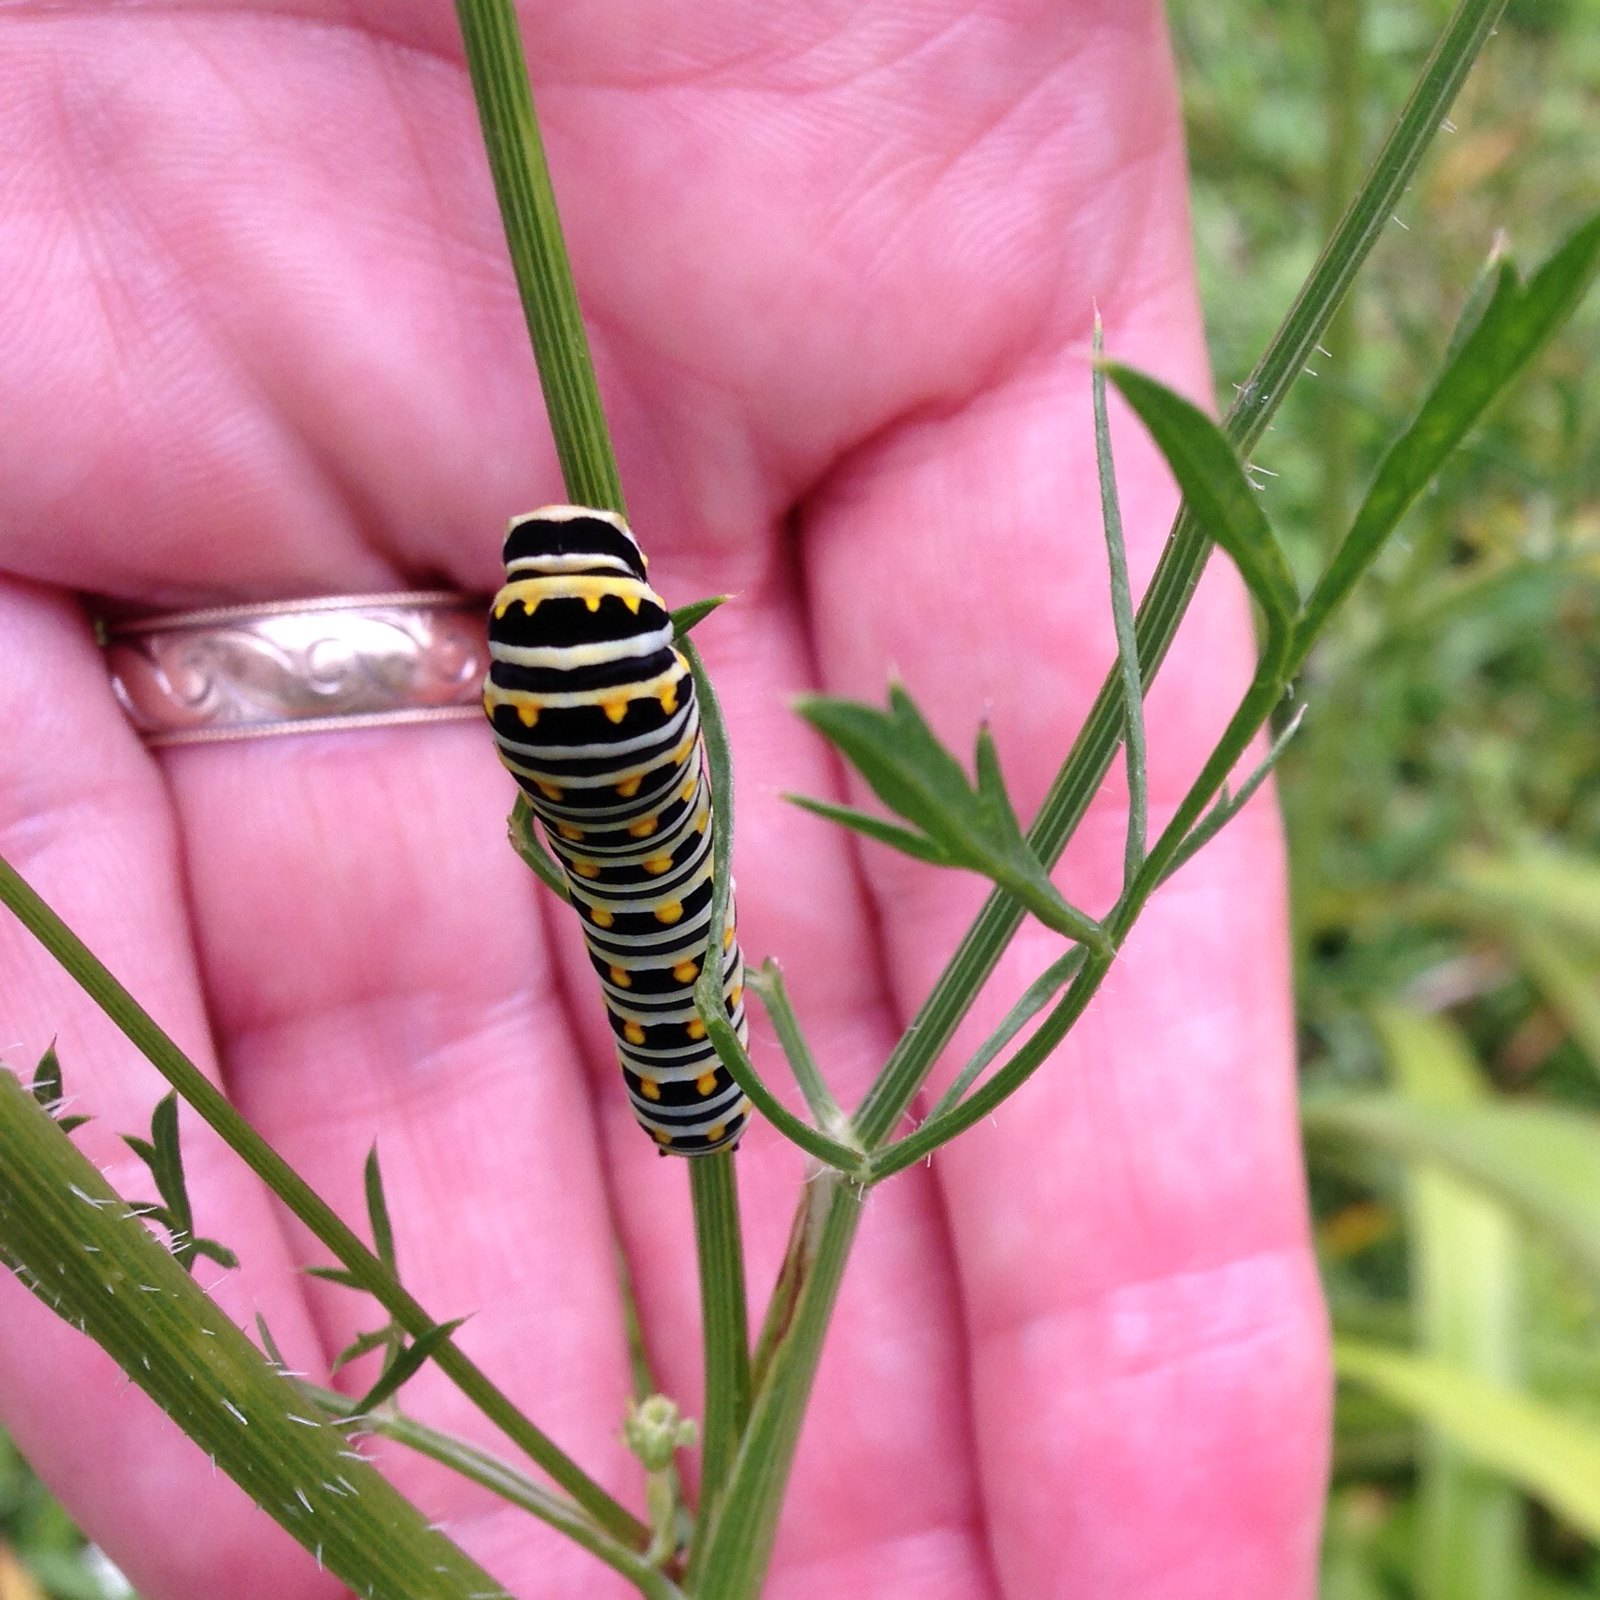 2015-08-06 Black Swallowtail caterpillar on Wild Carrot :)